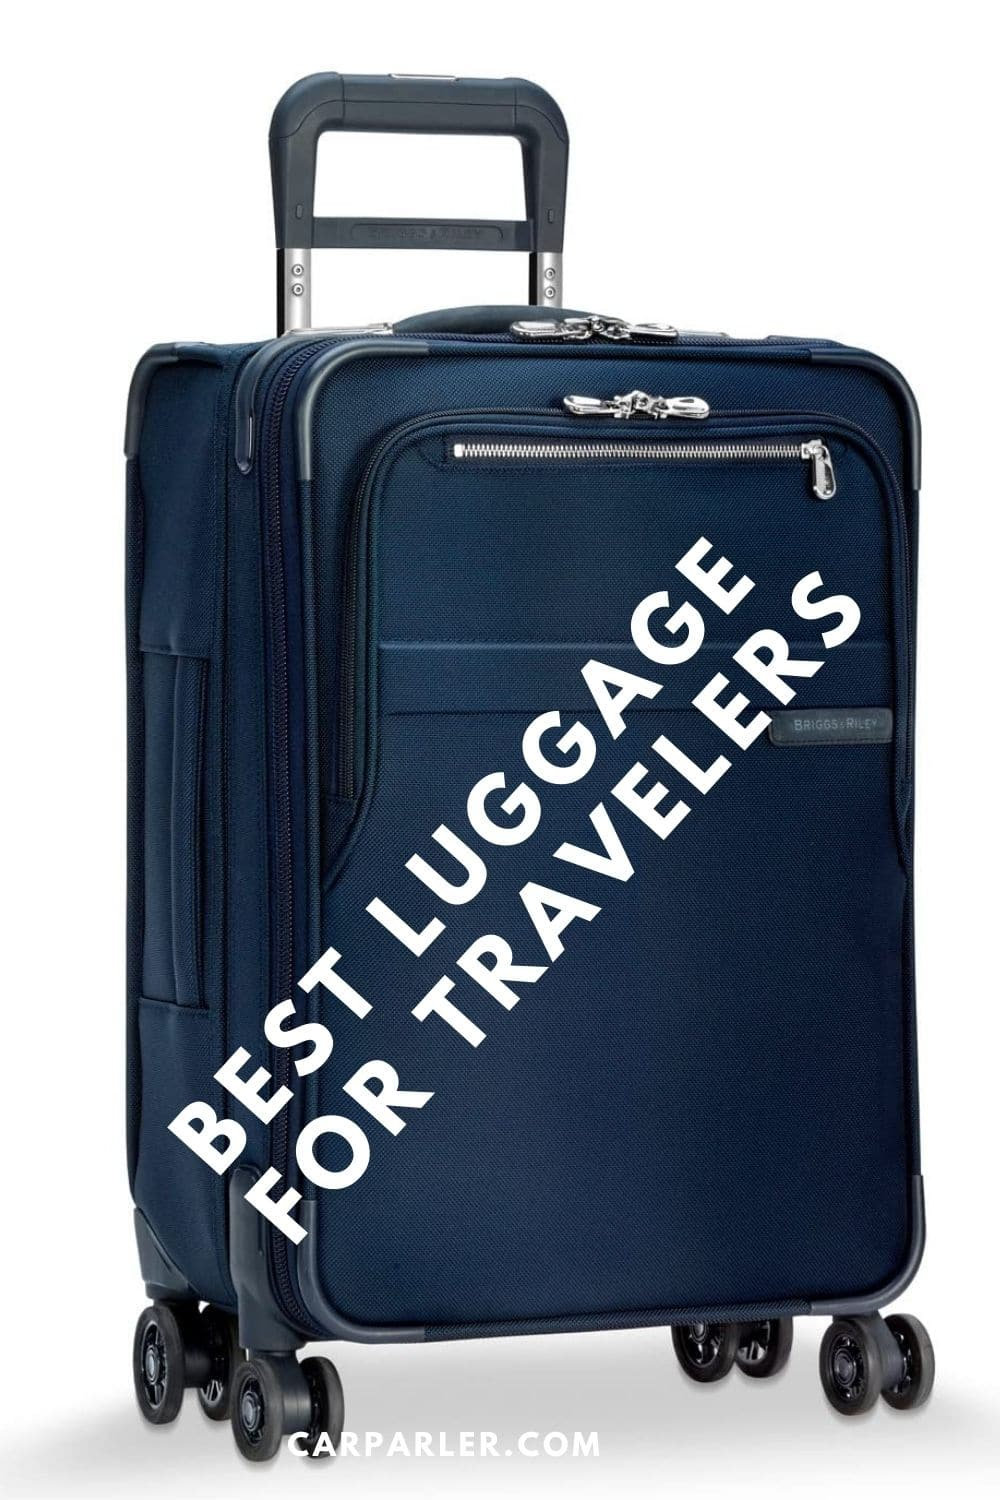 Best Luggage For Frequent Business Travelers